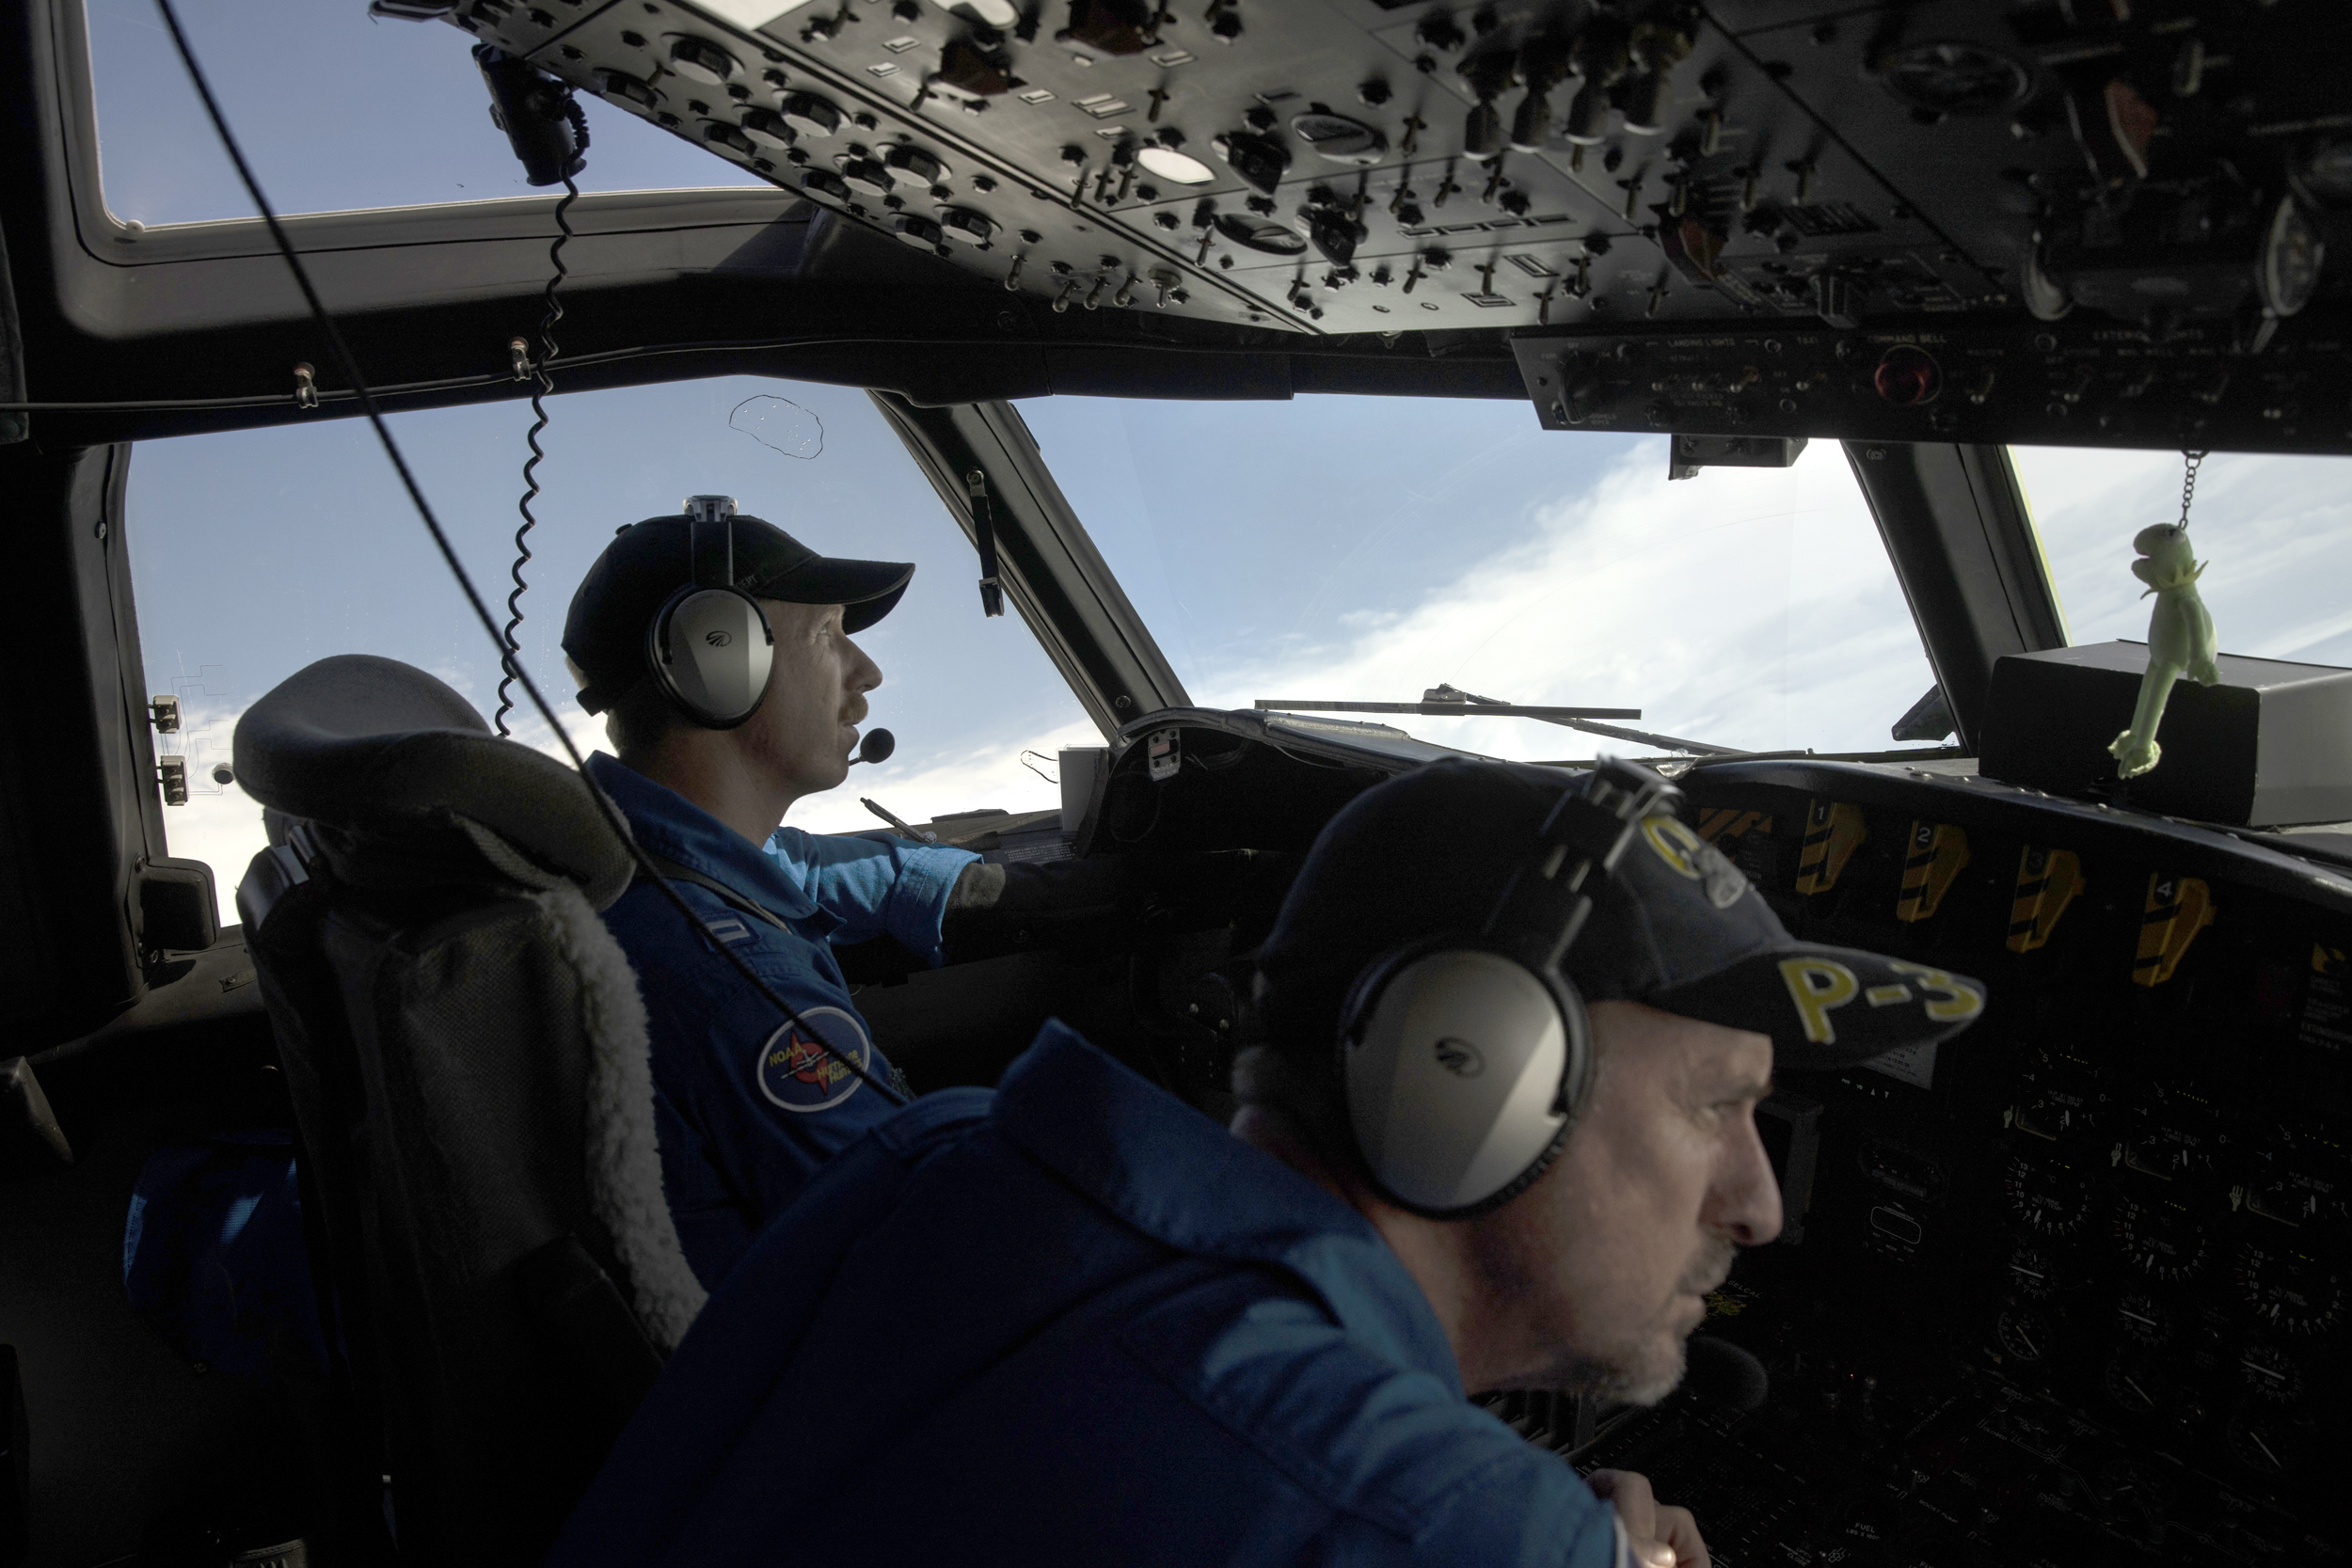 Researchers fly through Hurricane Dorian to learn science behind devastation